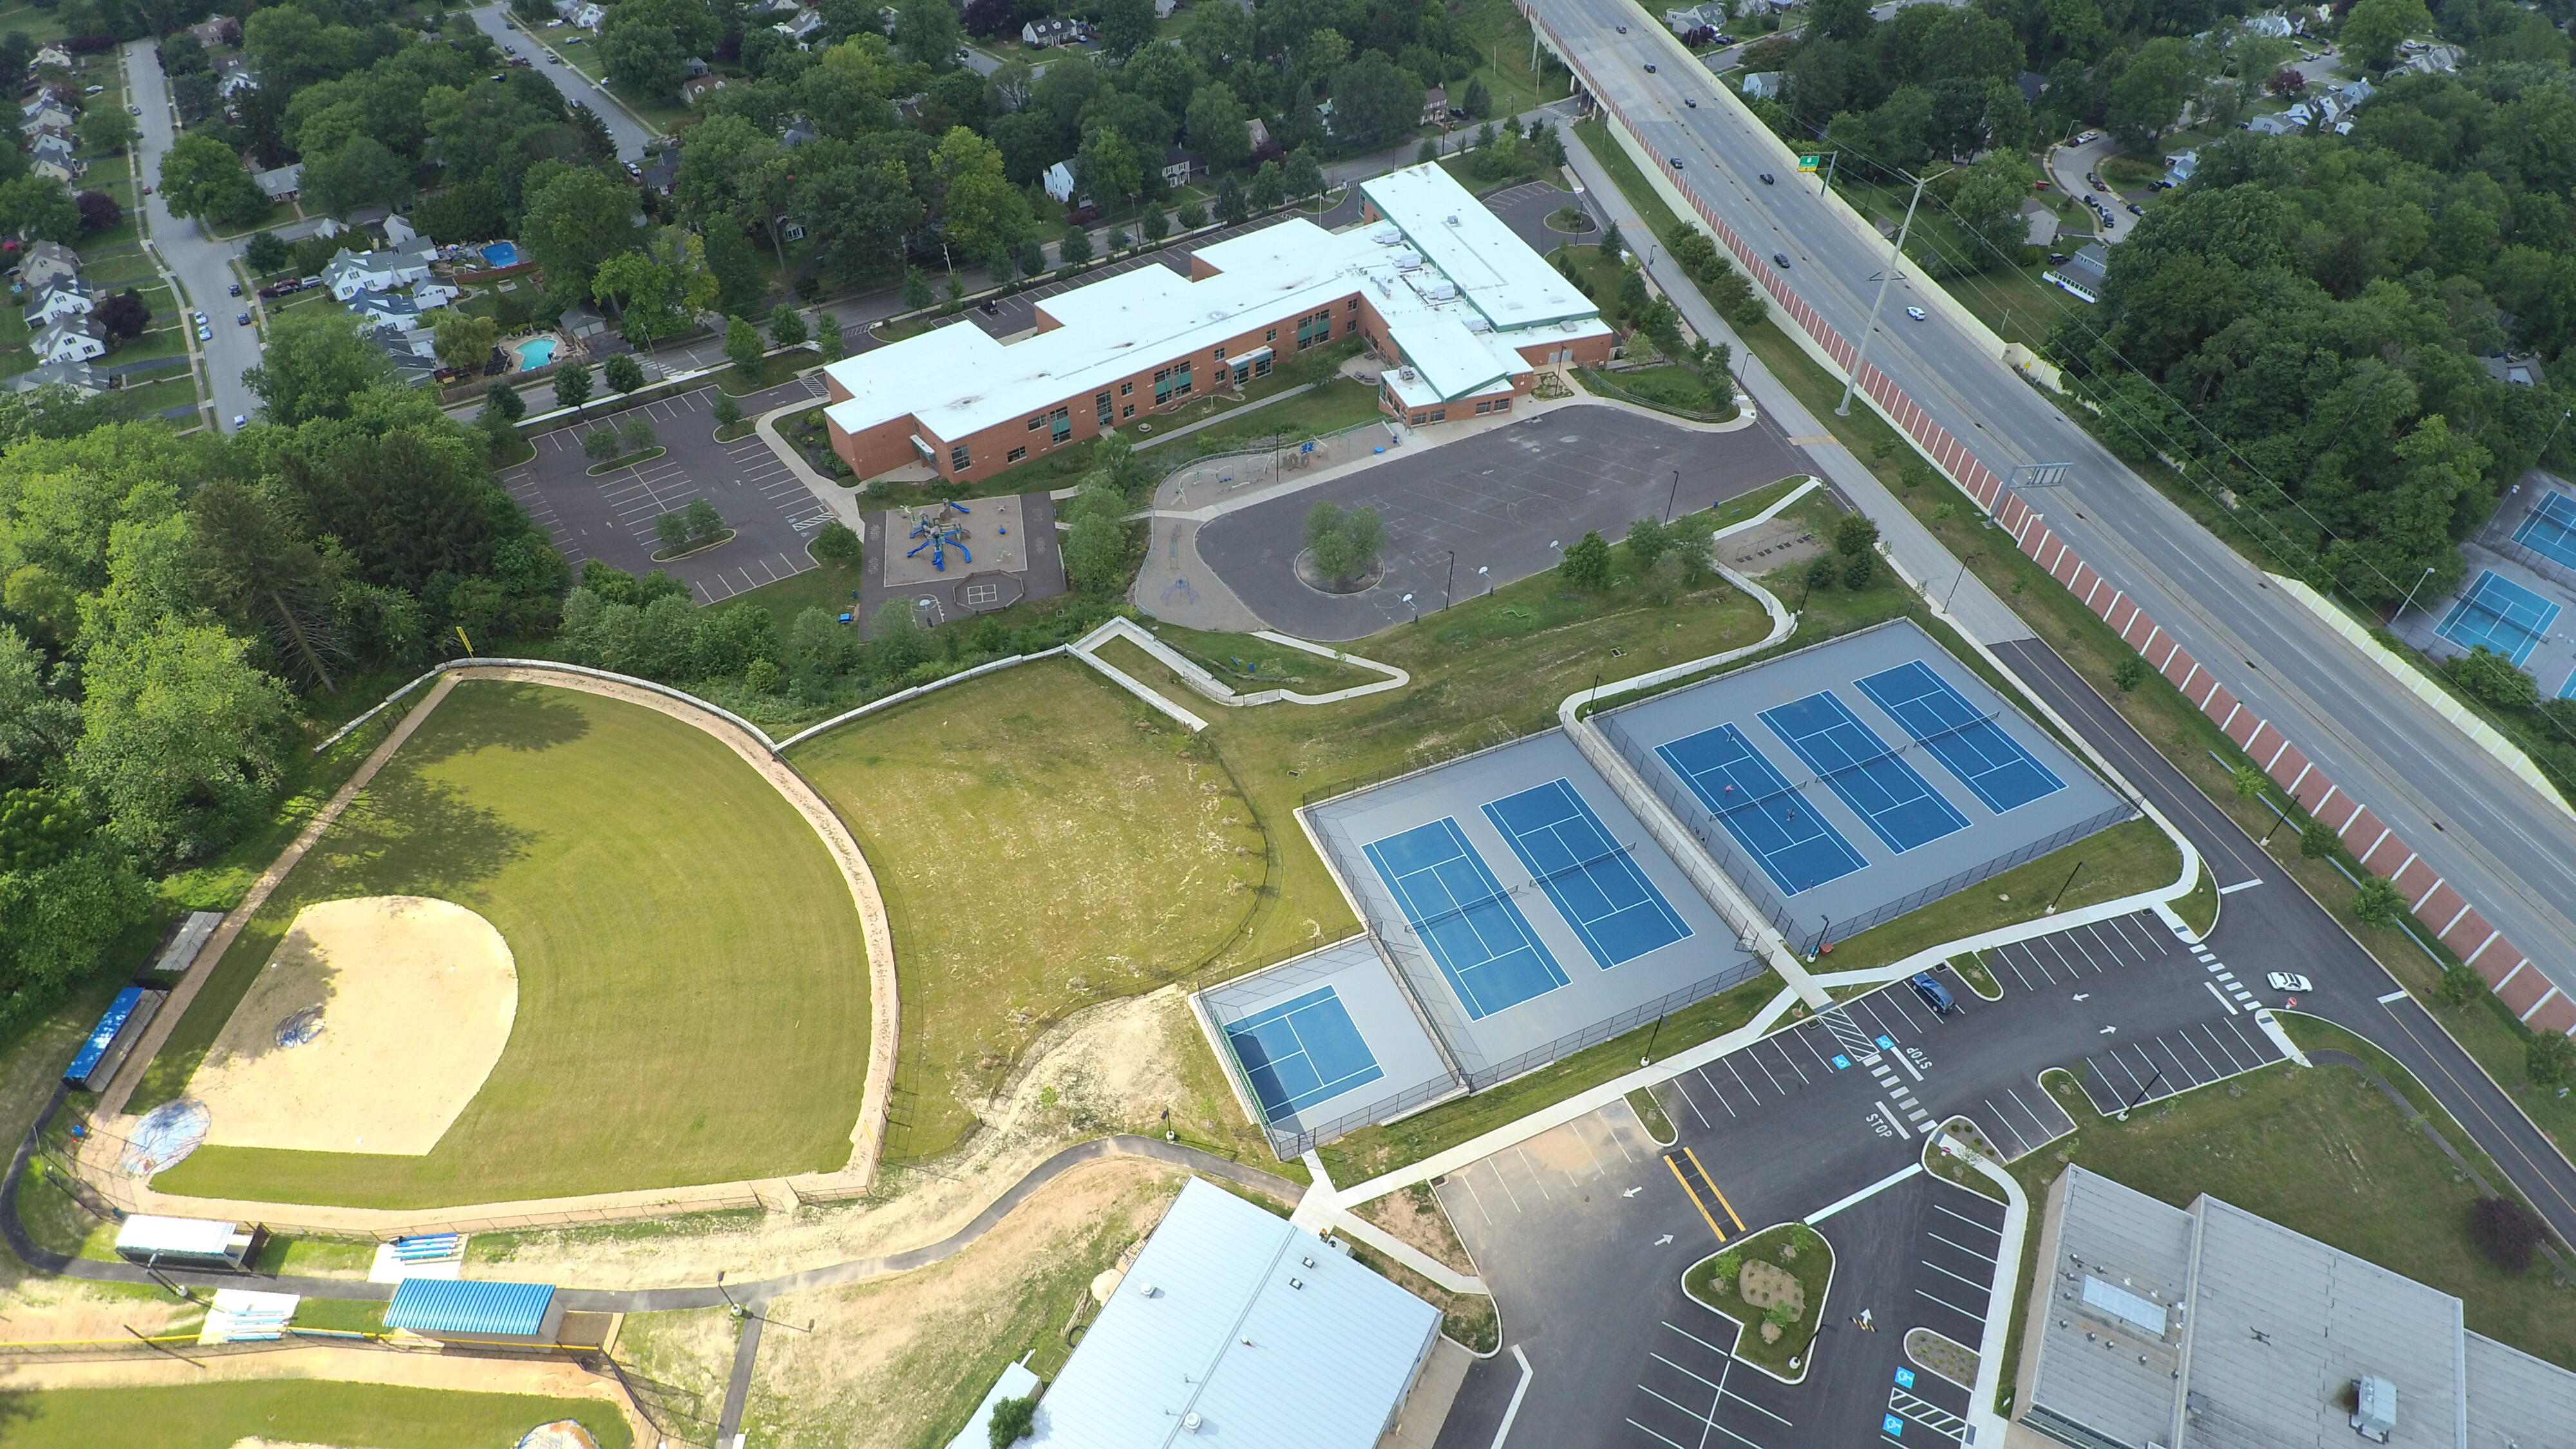 Drone photo of HS Tennis Courts